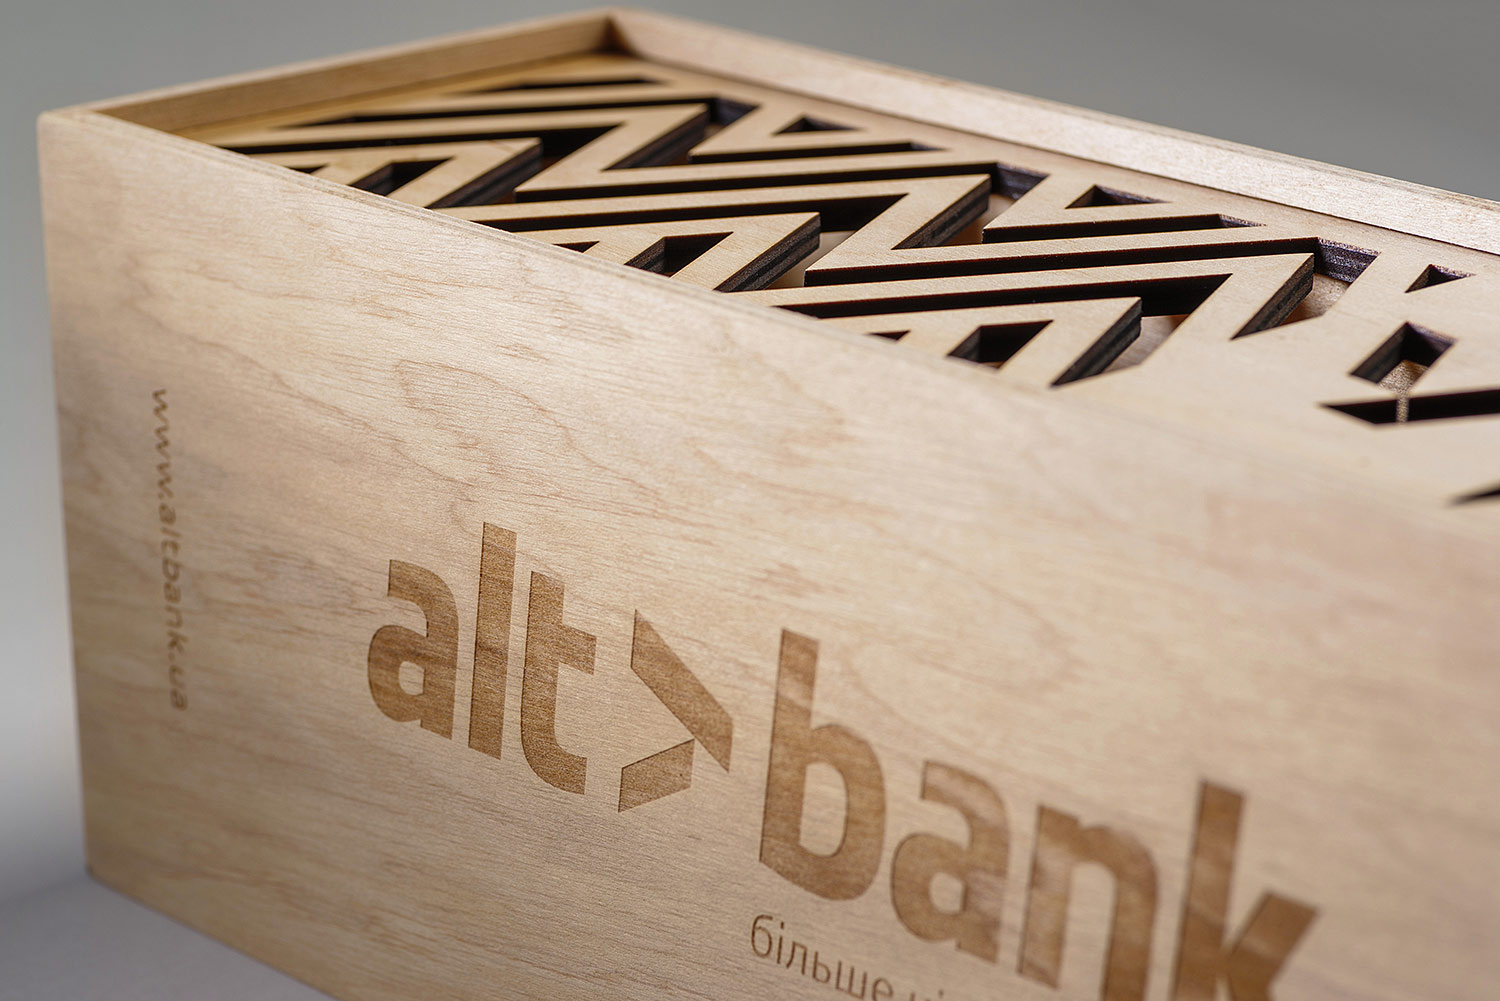 The laser engraved logo on plywood. The plywood box with the Altbank logo.